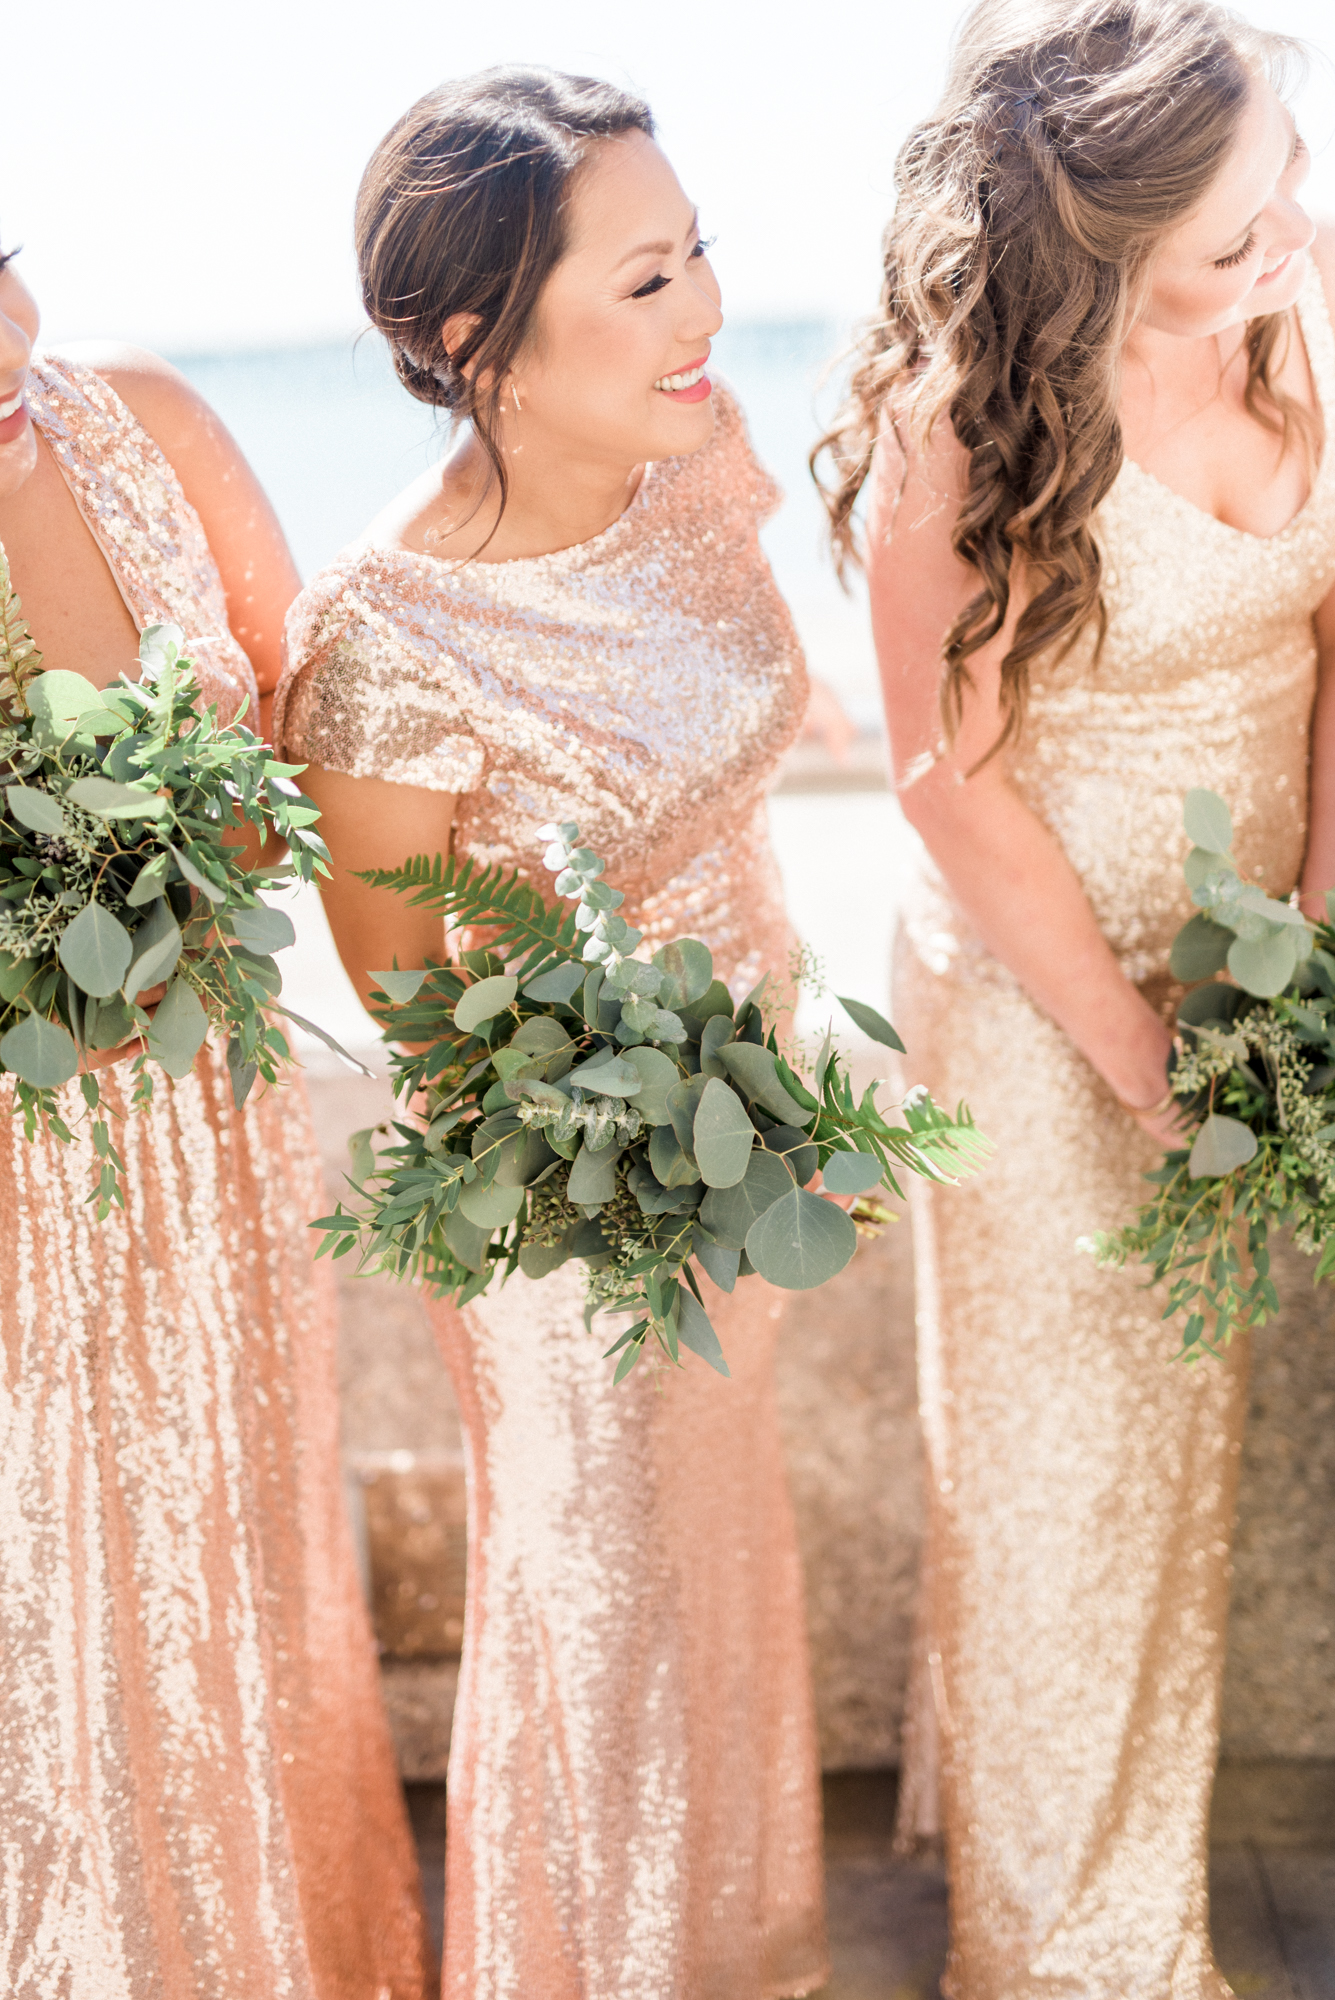 Sparkling Pink & Gold California Wedding | Haley Richter Photography 45